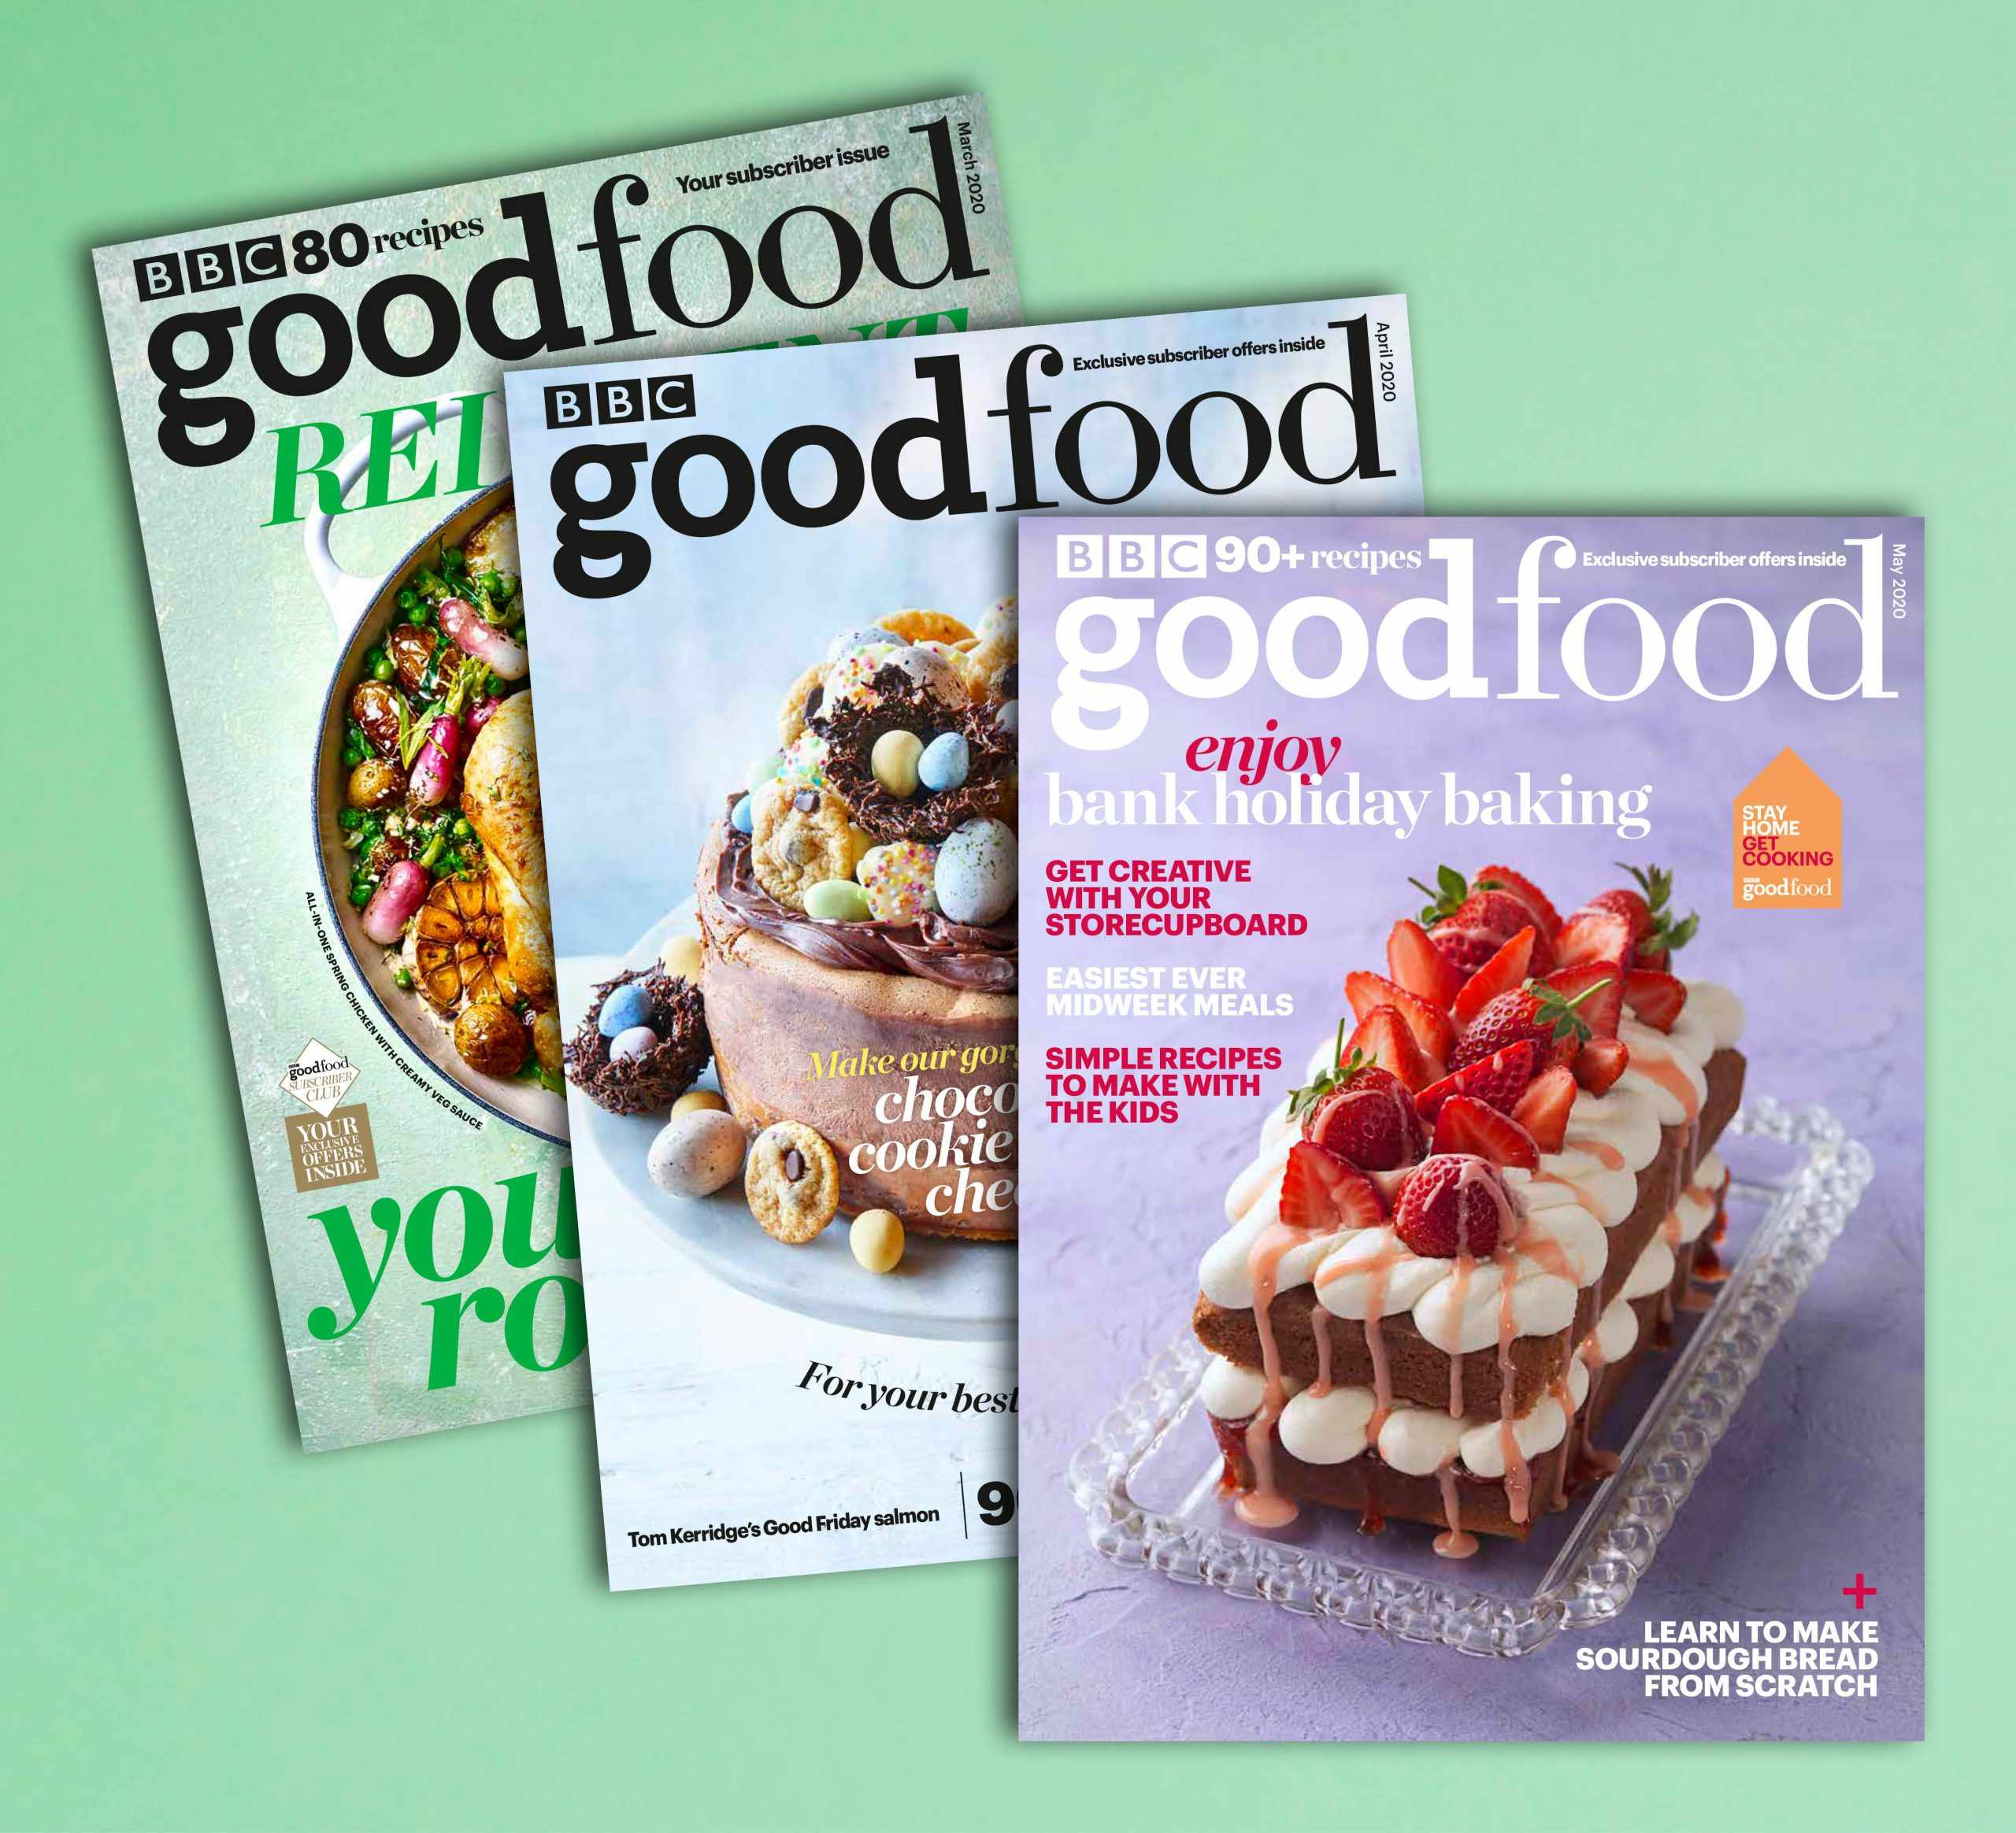 2. Subscribe to BBC Good Food